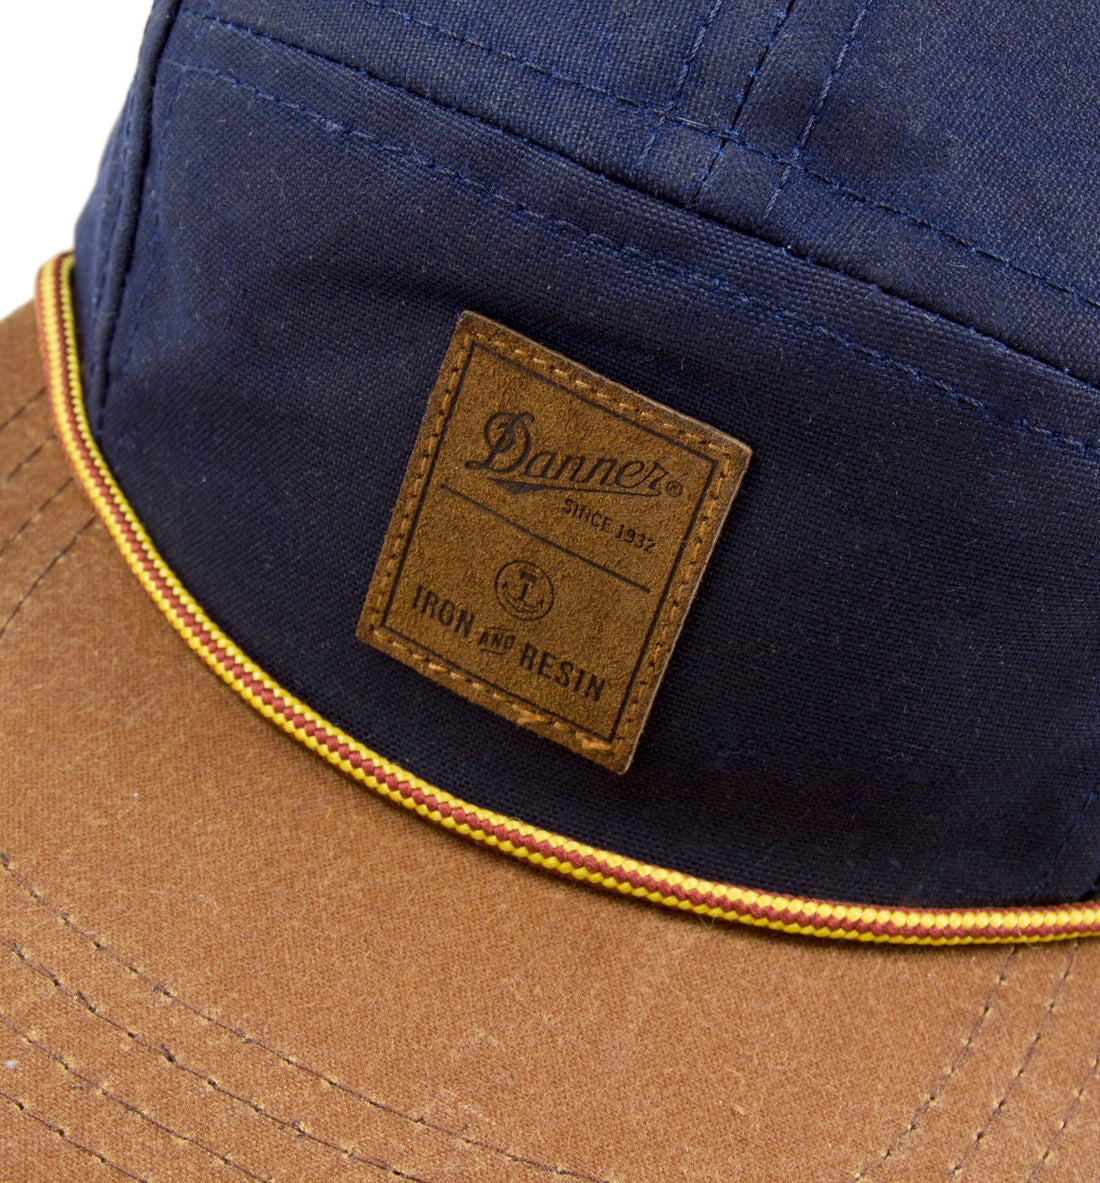 INR x Danner Rivermouth Camp Hat - Accessories: Headwear - Iron and Resin